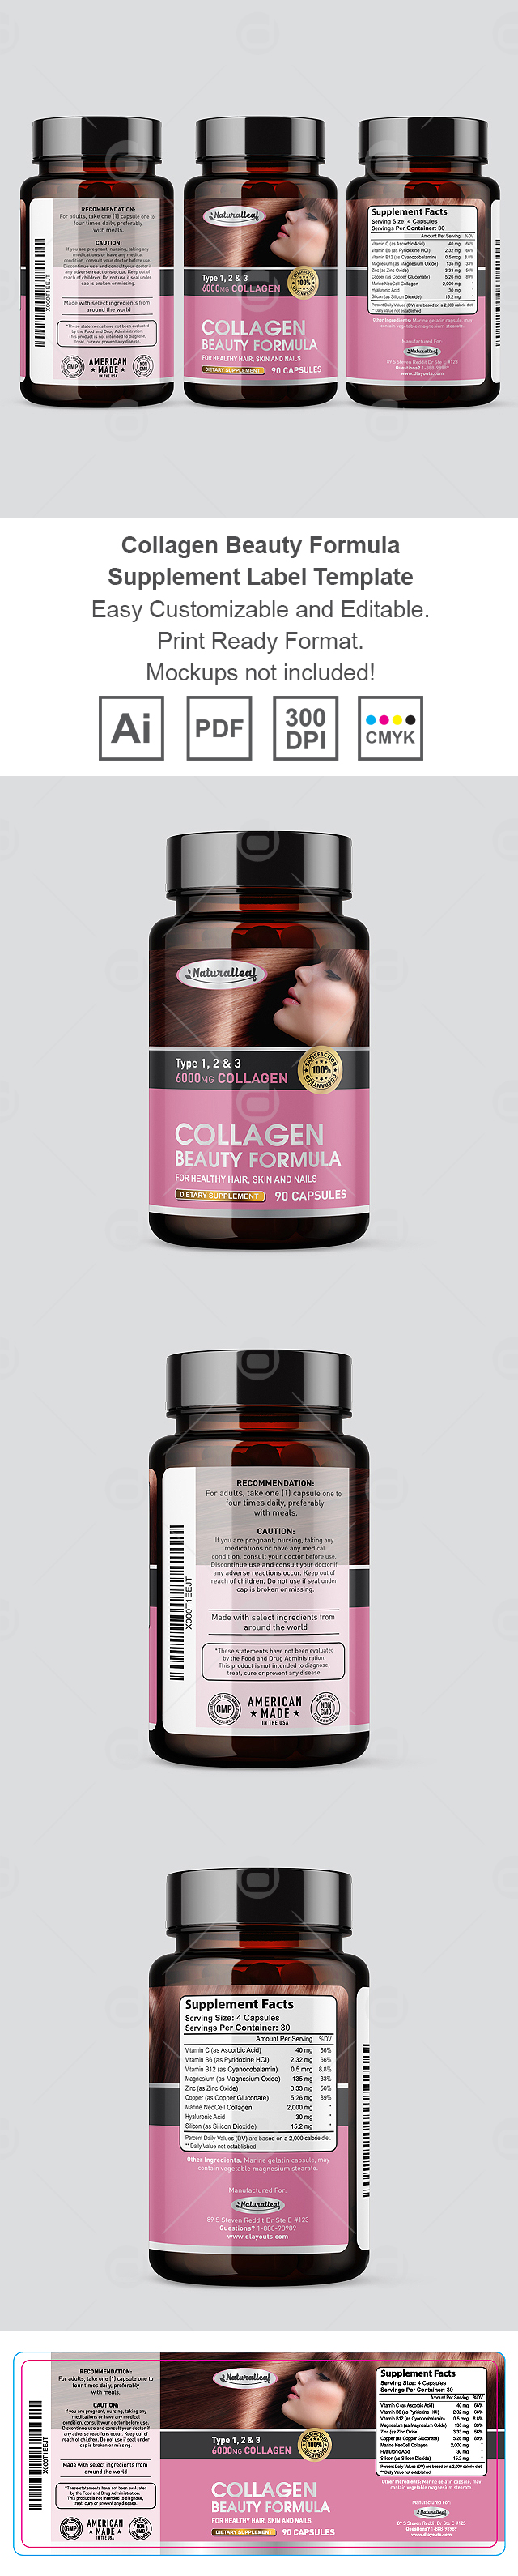 Collagen Beauty Formula Supplement Label Template